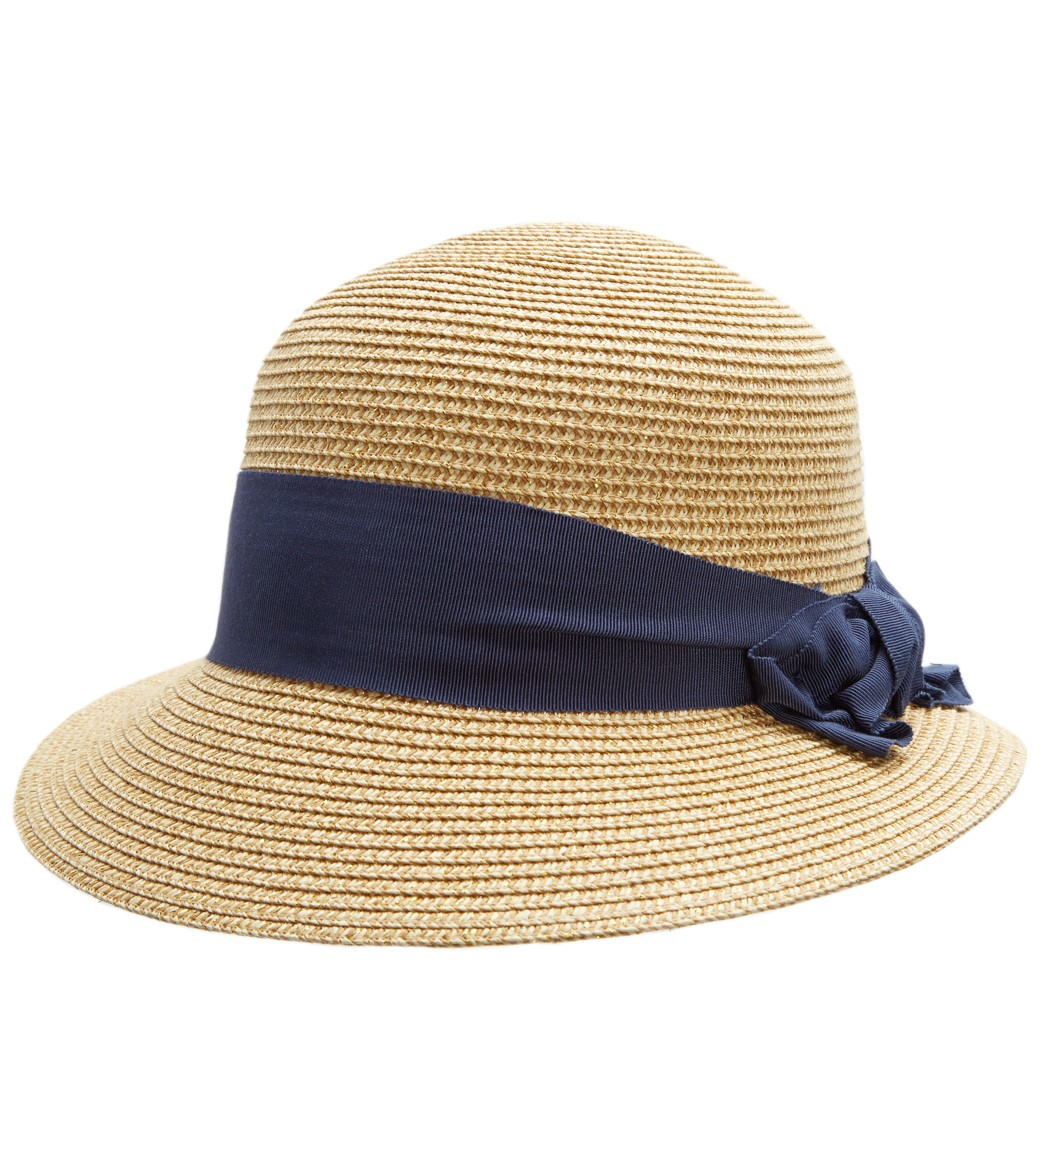 ecb42f60 Physician Endorsed Women's Spectator Straw Hat at SwimOutlet.com